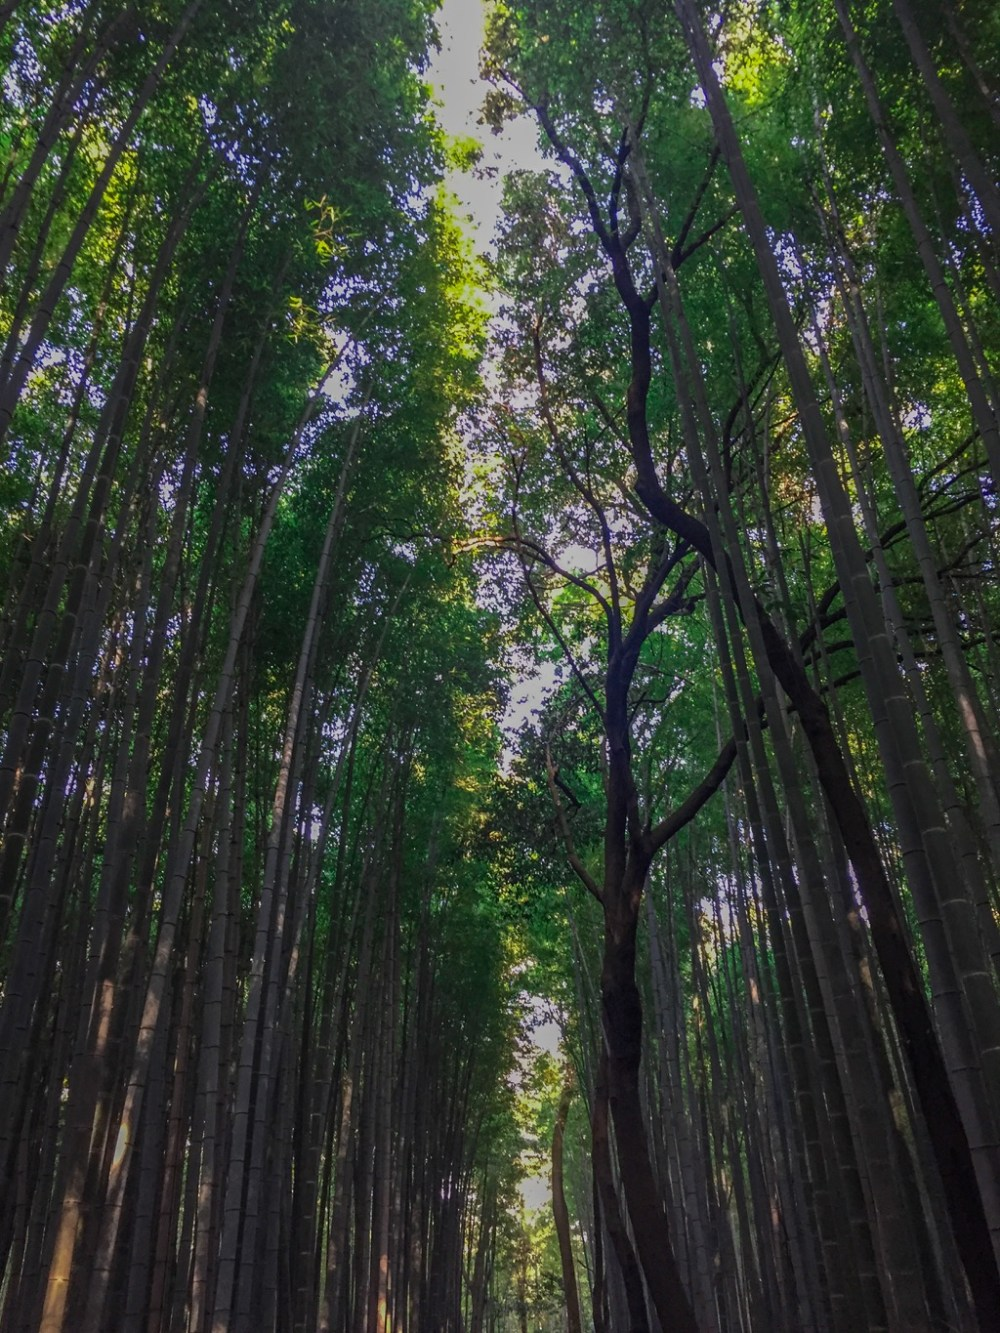 Arashiyama Bamboo Forest is located in Kyoto Japan